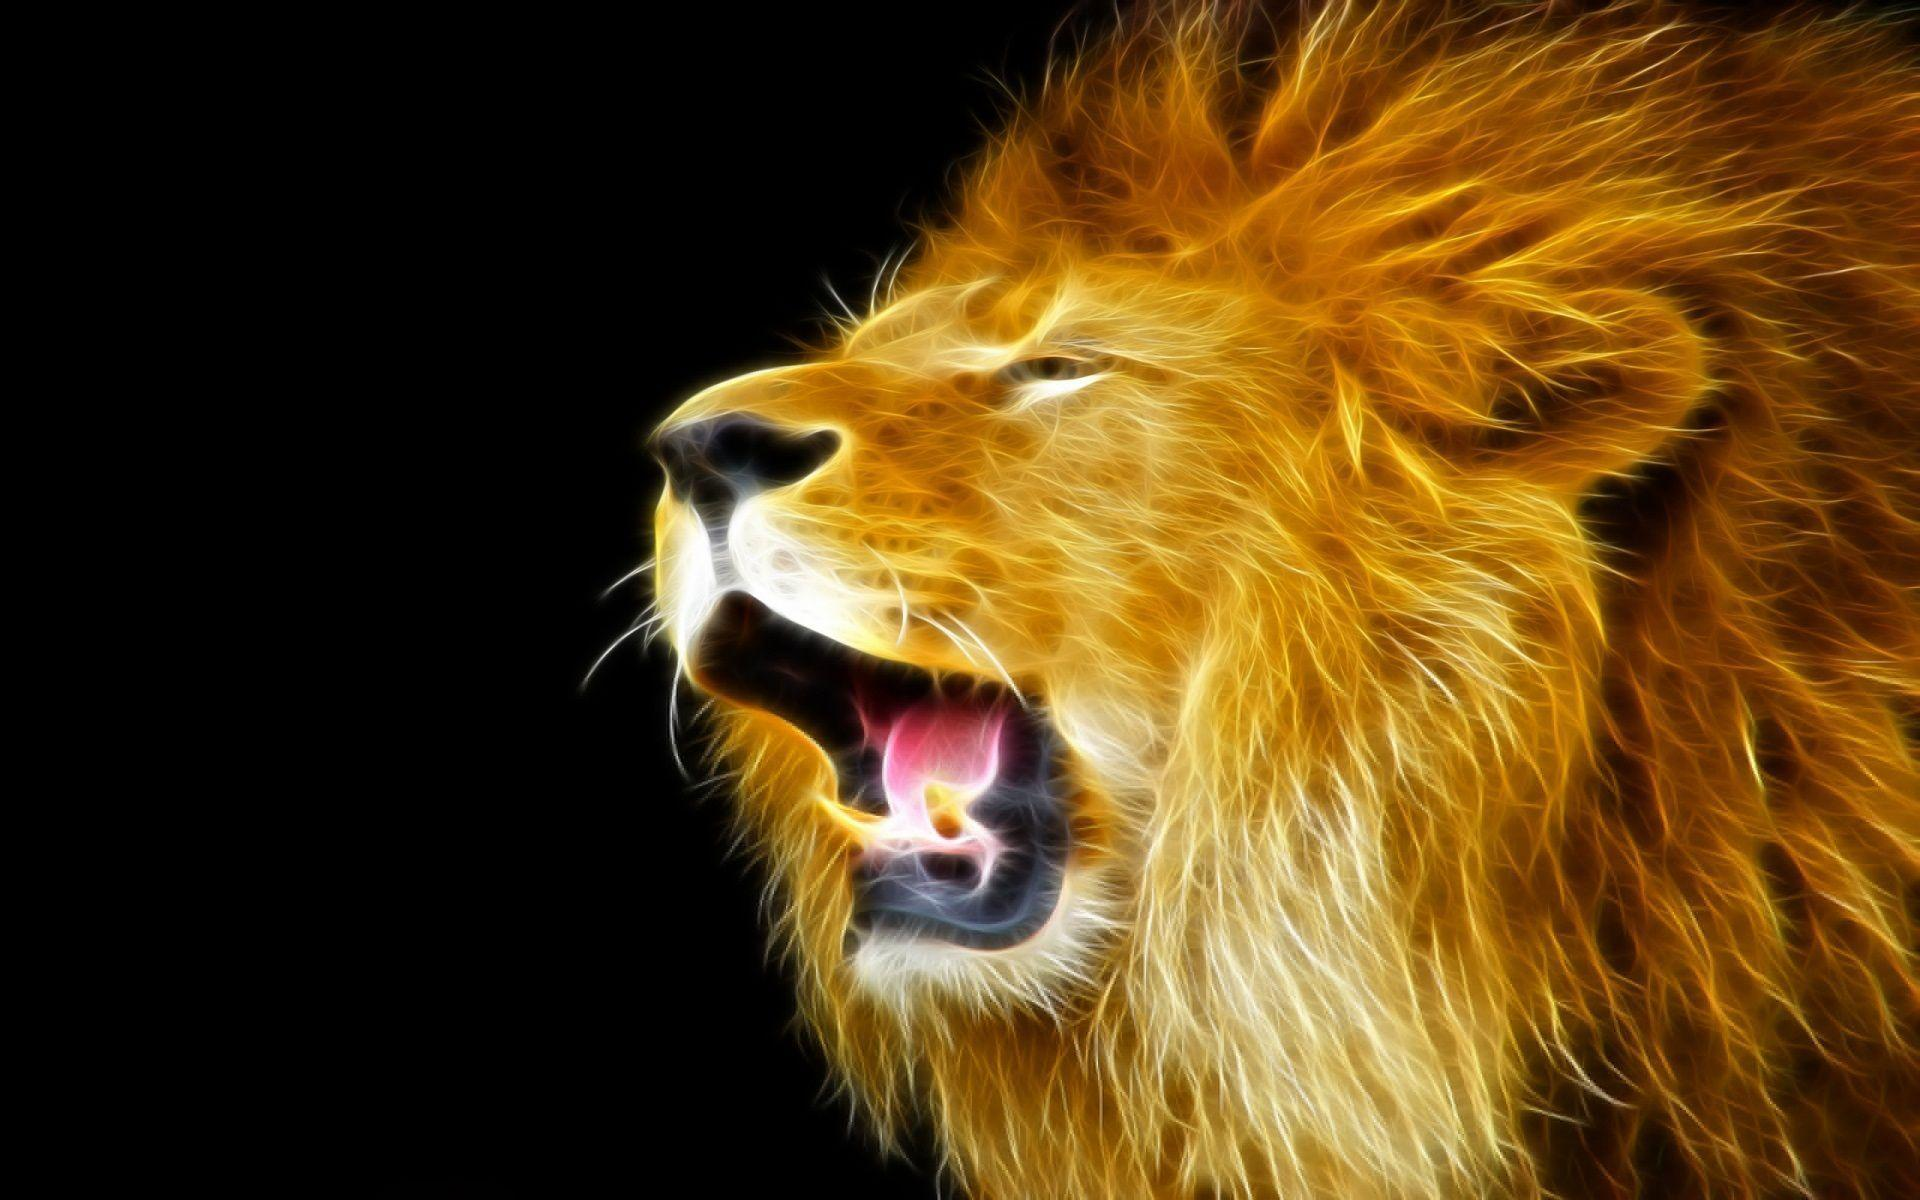 Download Lion Wallpapers - HD Wallpapers Inn